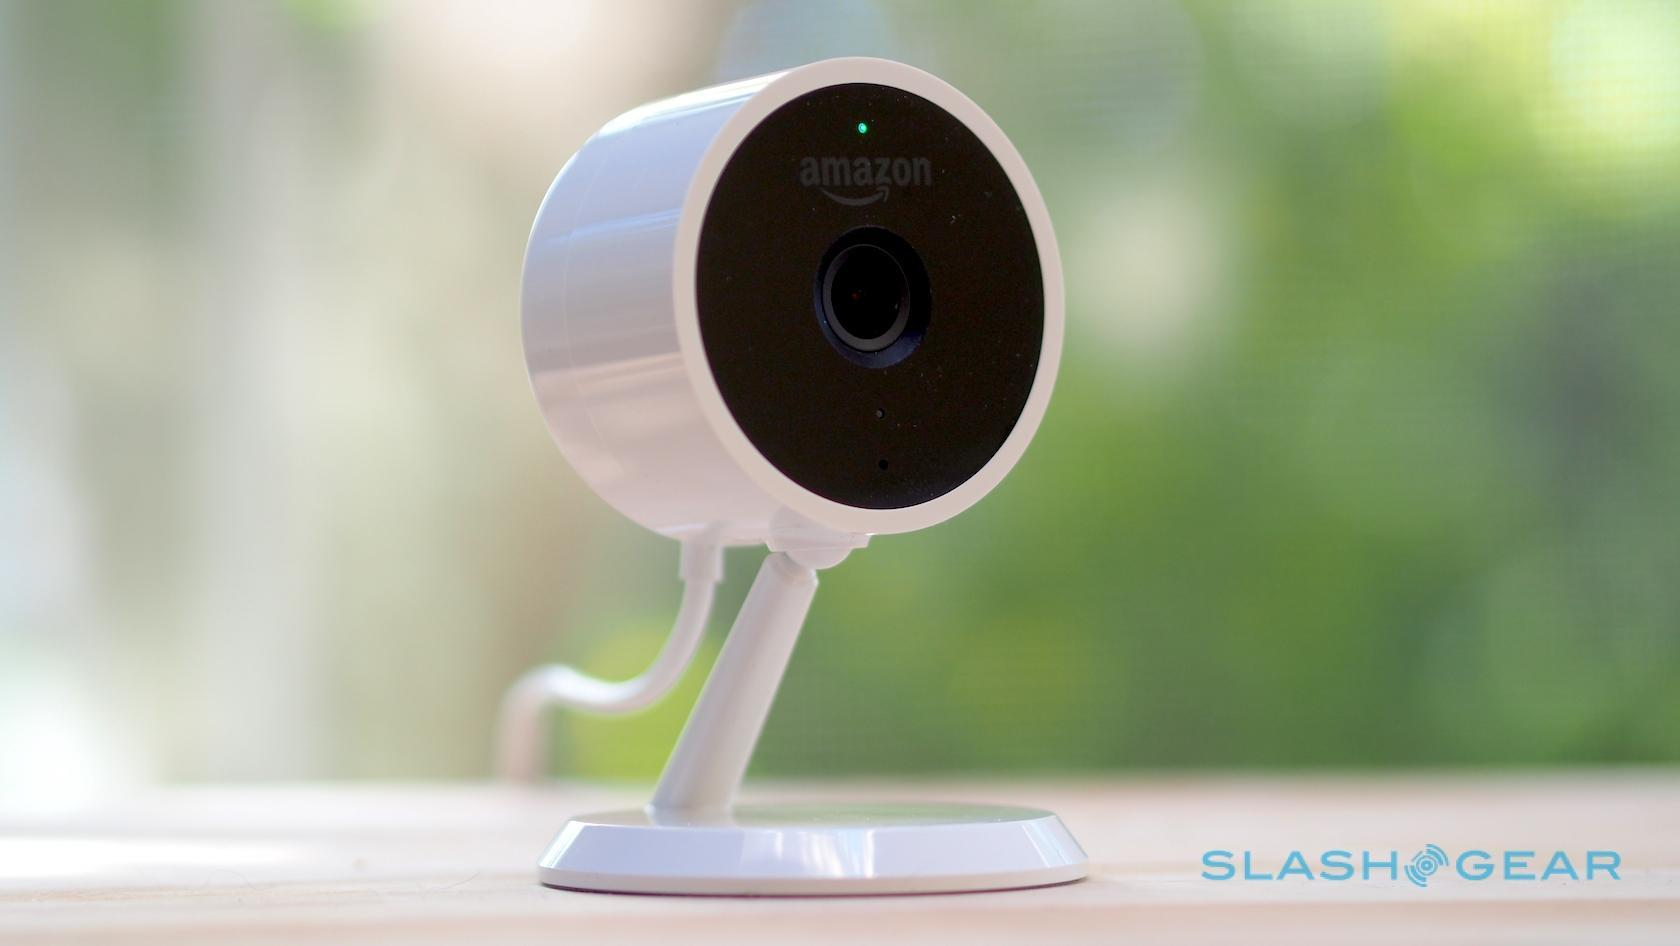 5 things to consider before buying Amazon's Cloud Cam